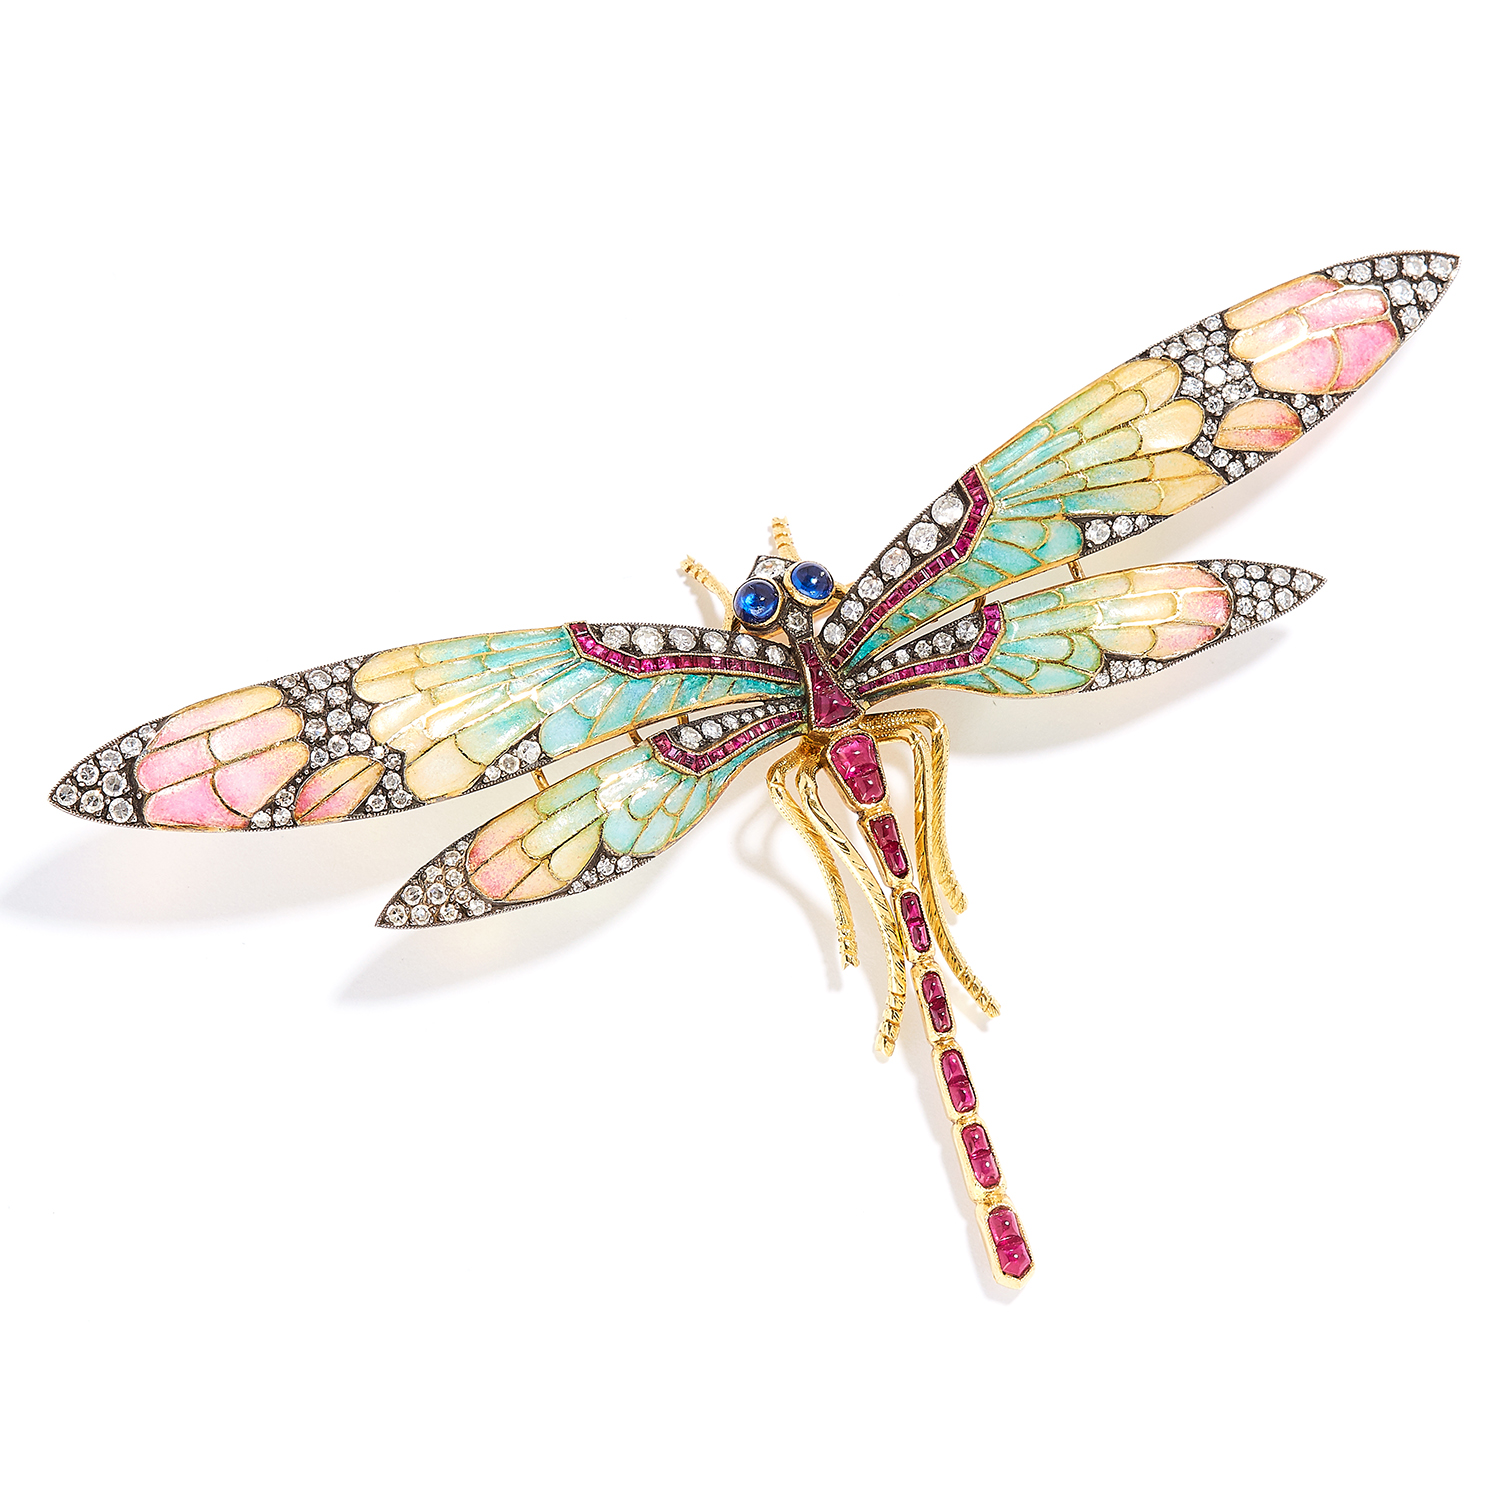 ANTIQUE ART NOUVEAU RUBY, SAPPHIRE, ENAMEL AND DIAMOND DRAGONFLY BROOCH in high carat yellow gold,